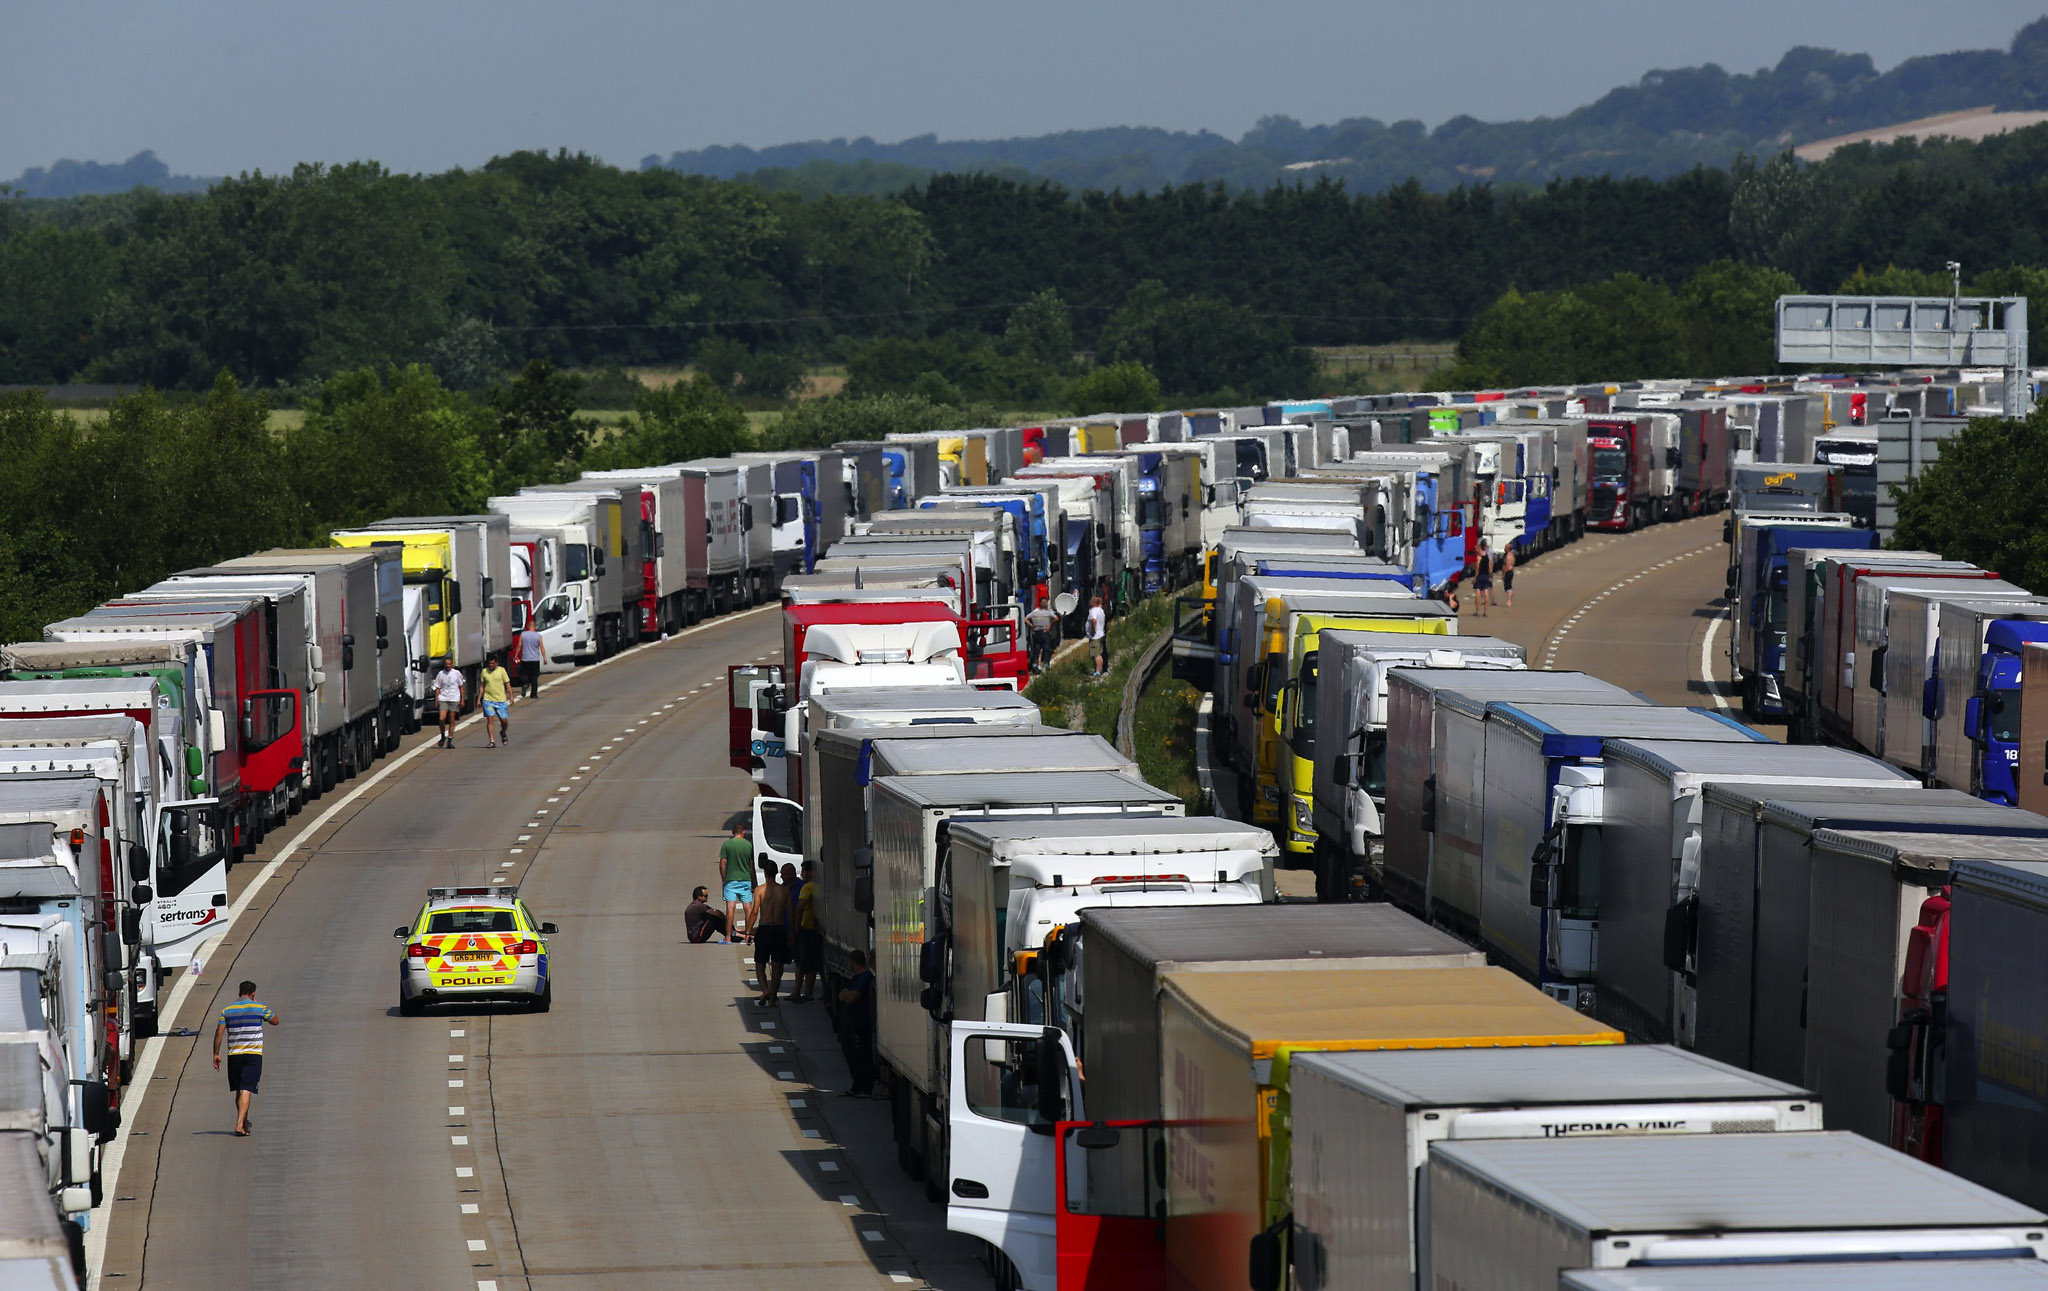 Lorries parked on both carriageways of the M20 in Ashford, Kent, as Operation Stack remains in place due to industrial action in Calais on what is predicted to be the hottest day of the year so far.